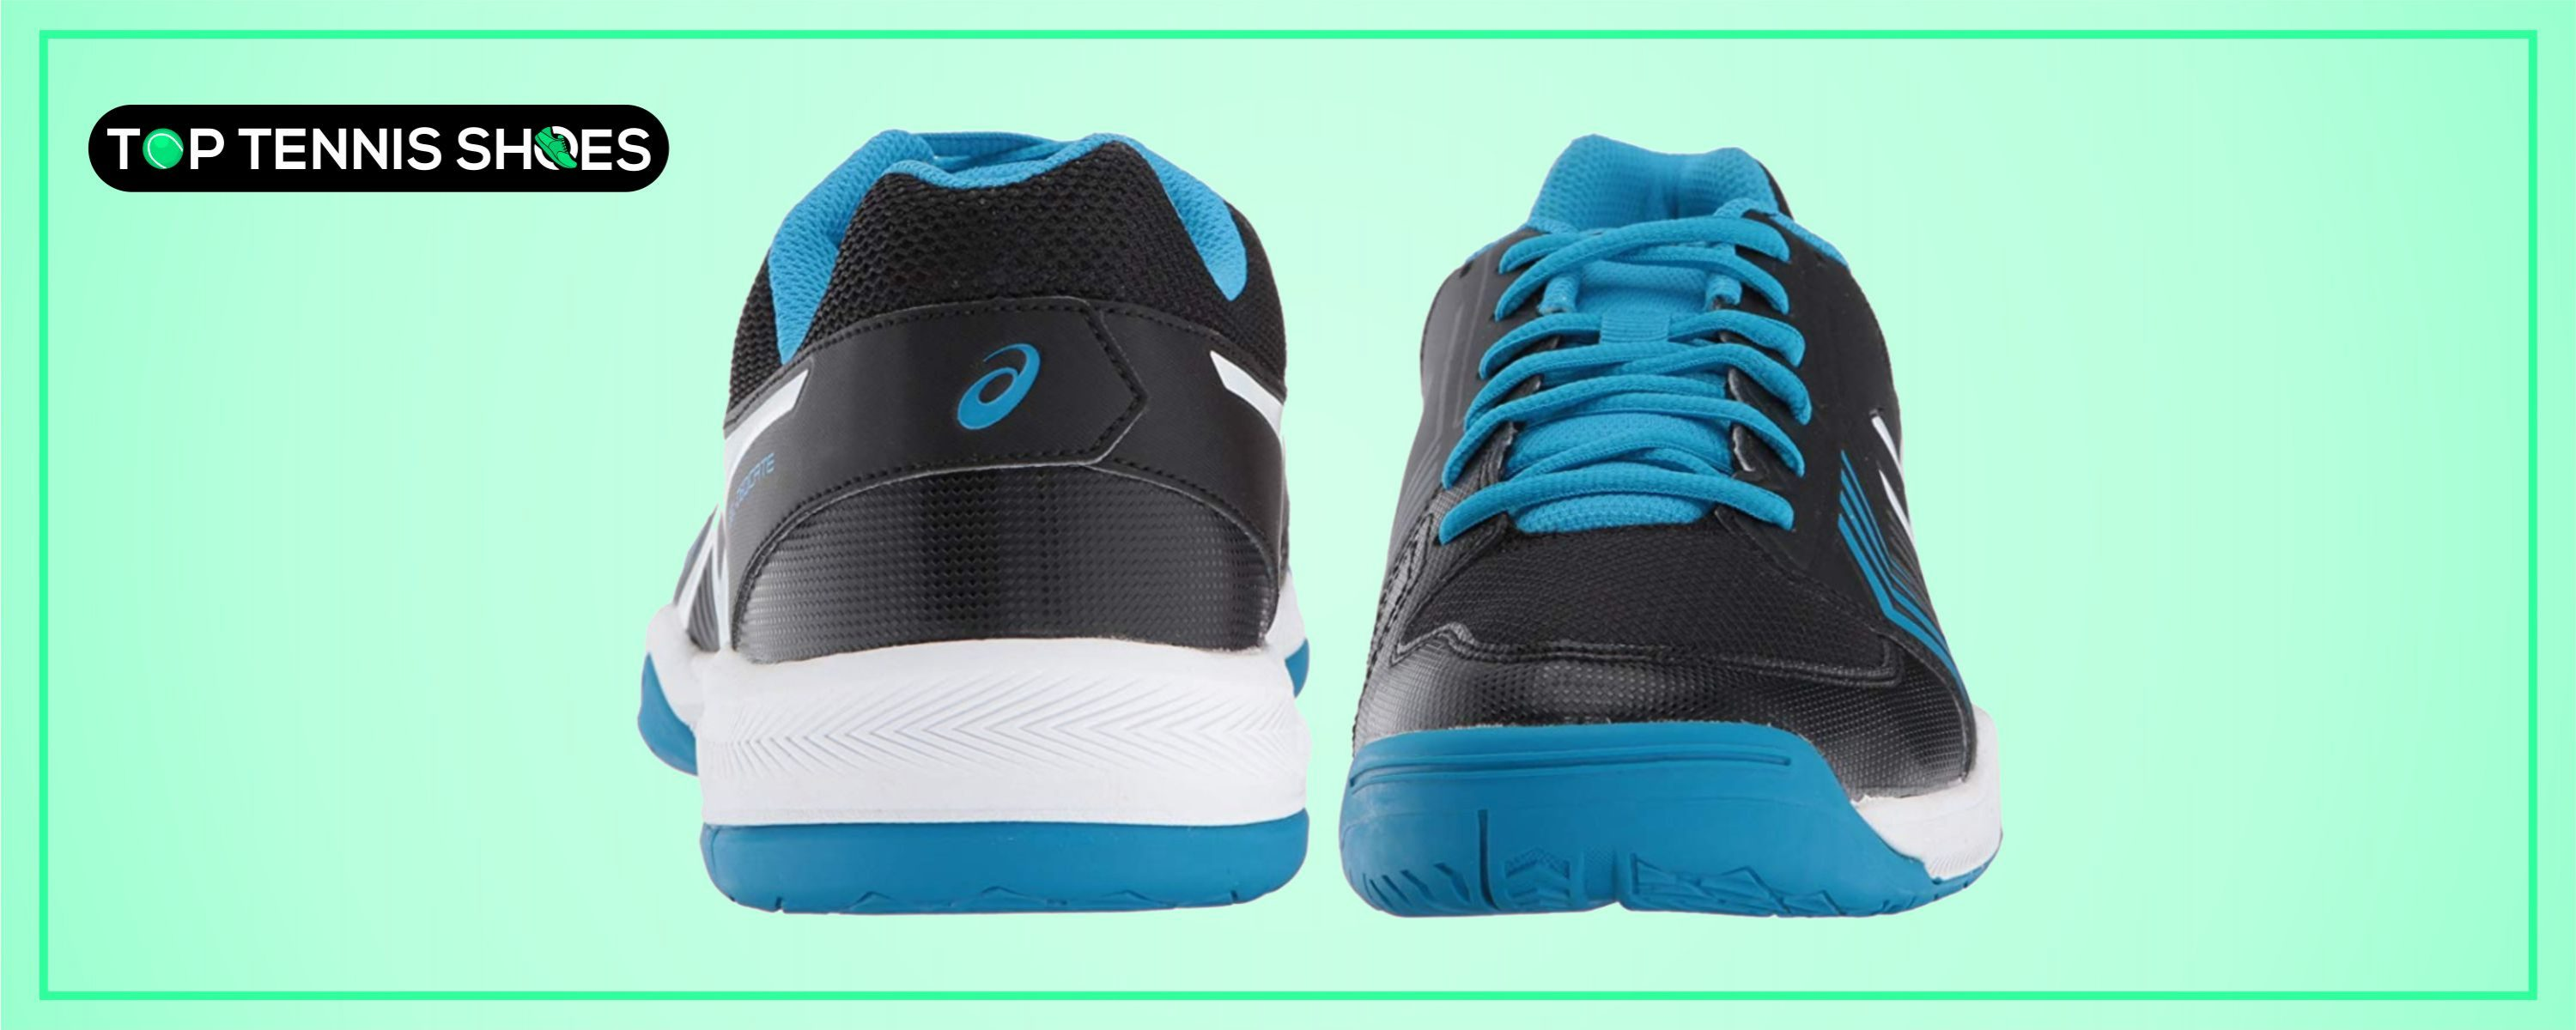 tennis shoes for heavy players guide